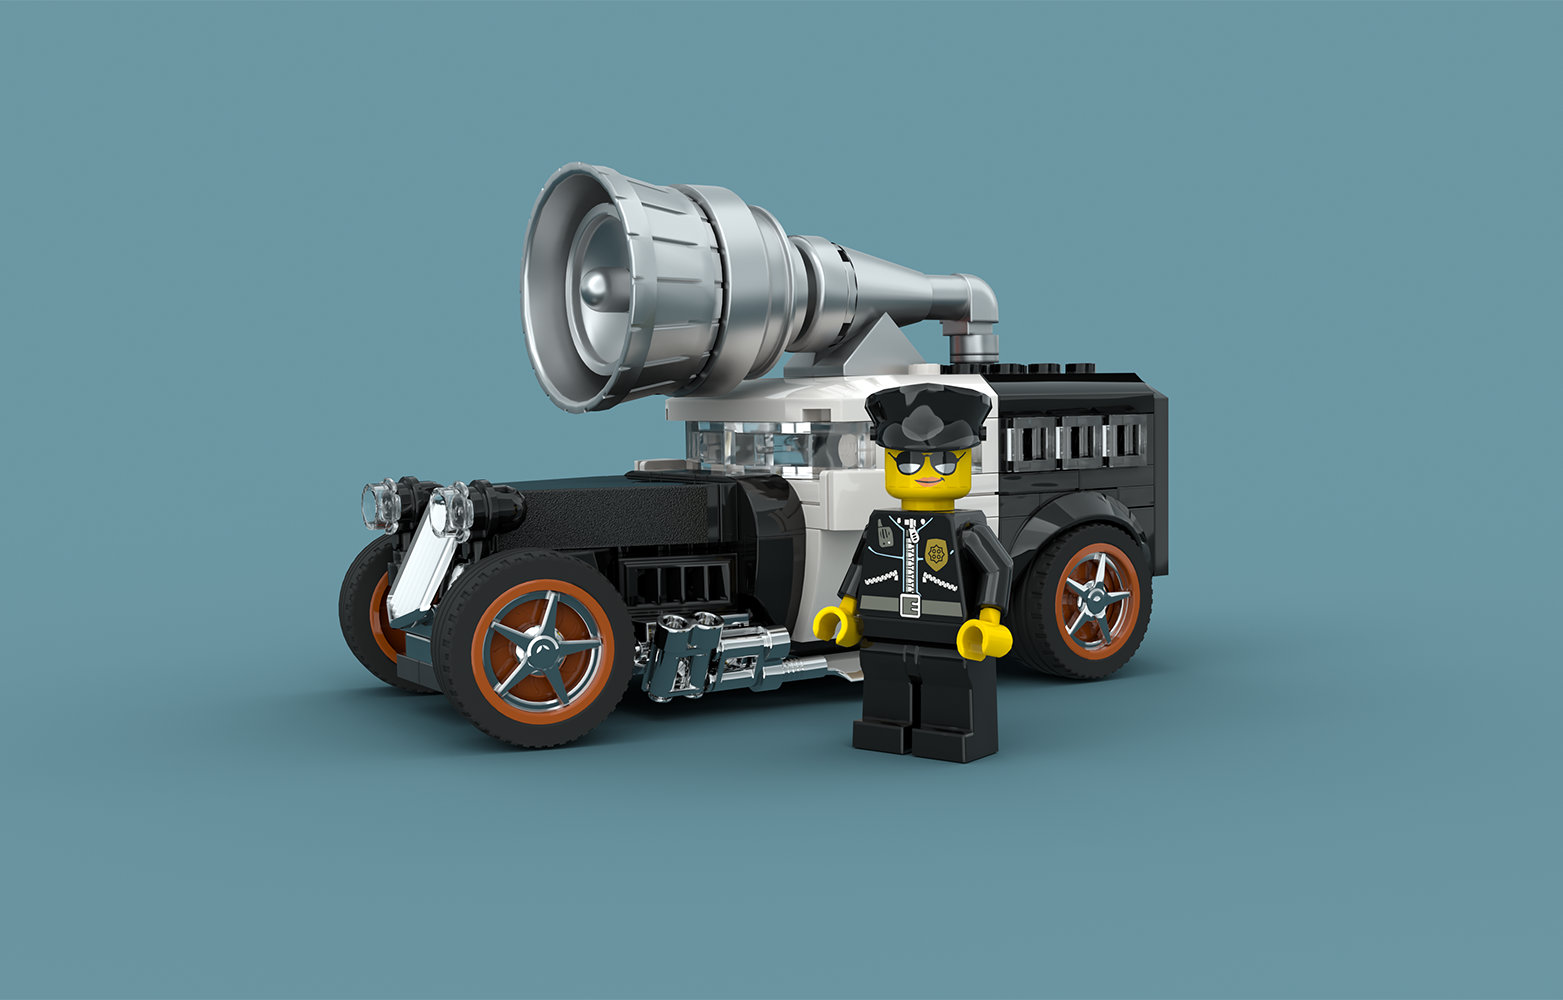 Quelle: flickr - GolPlaysWithLego - Outrageously over the top police street rod